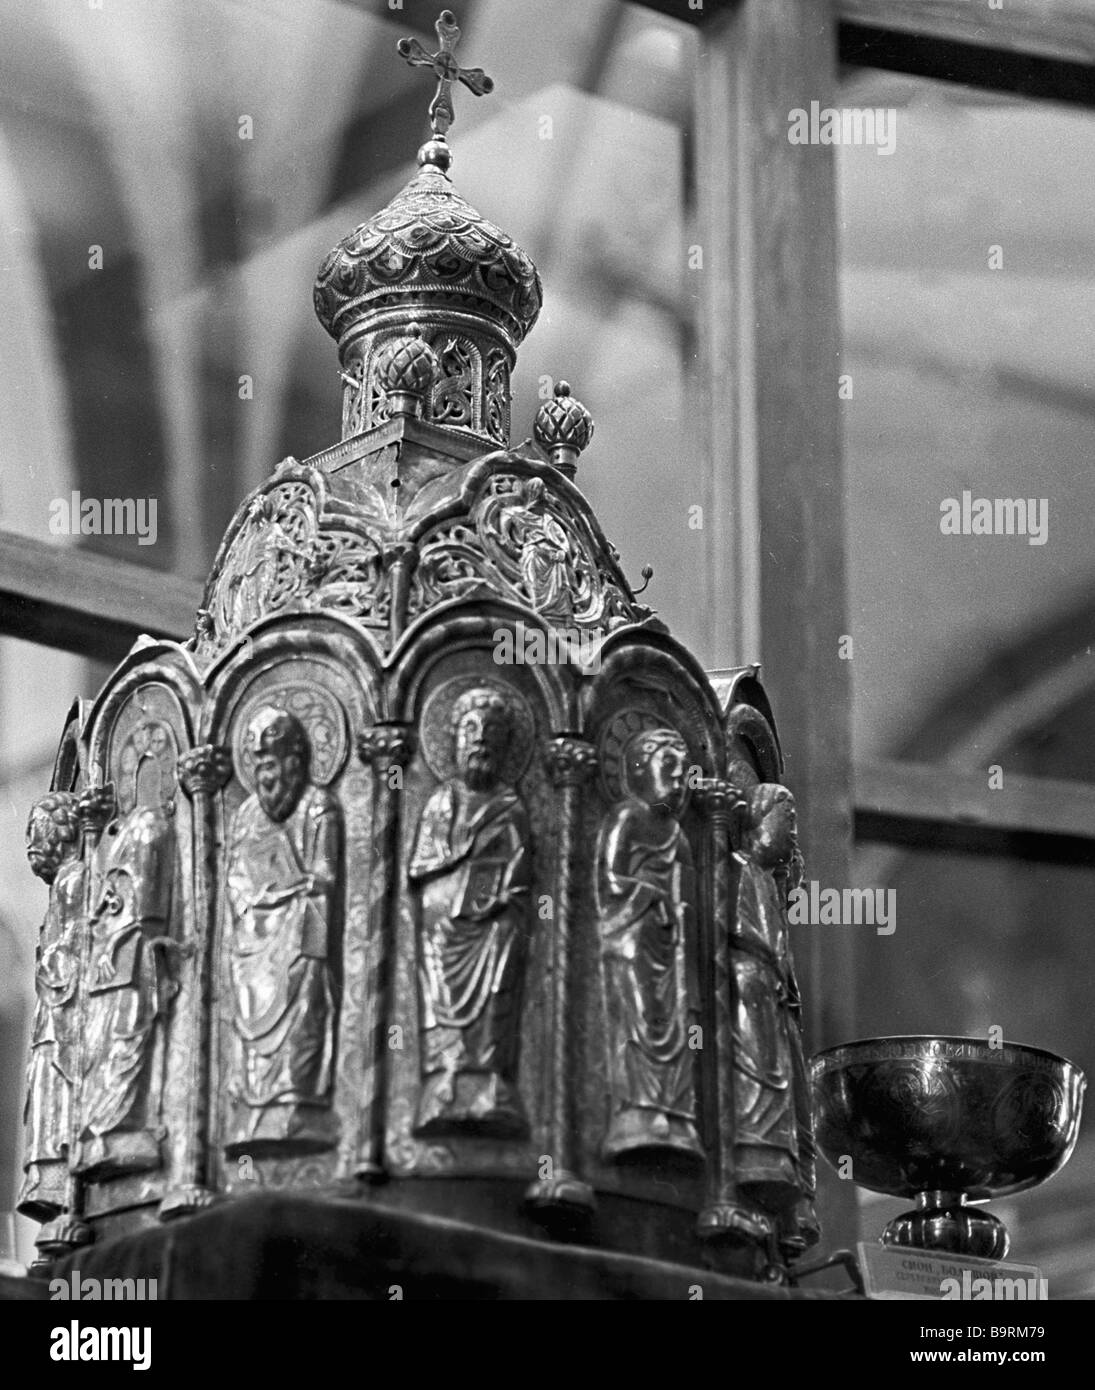 Big zion silver tabernacle from collection of Armory Chamber of Moscow Kremlin - Stock Image